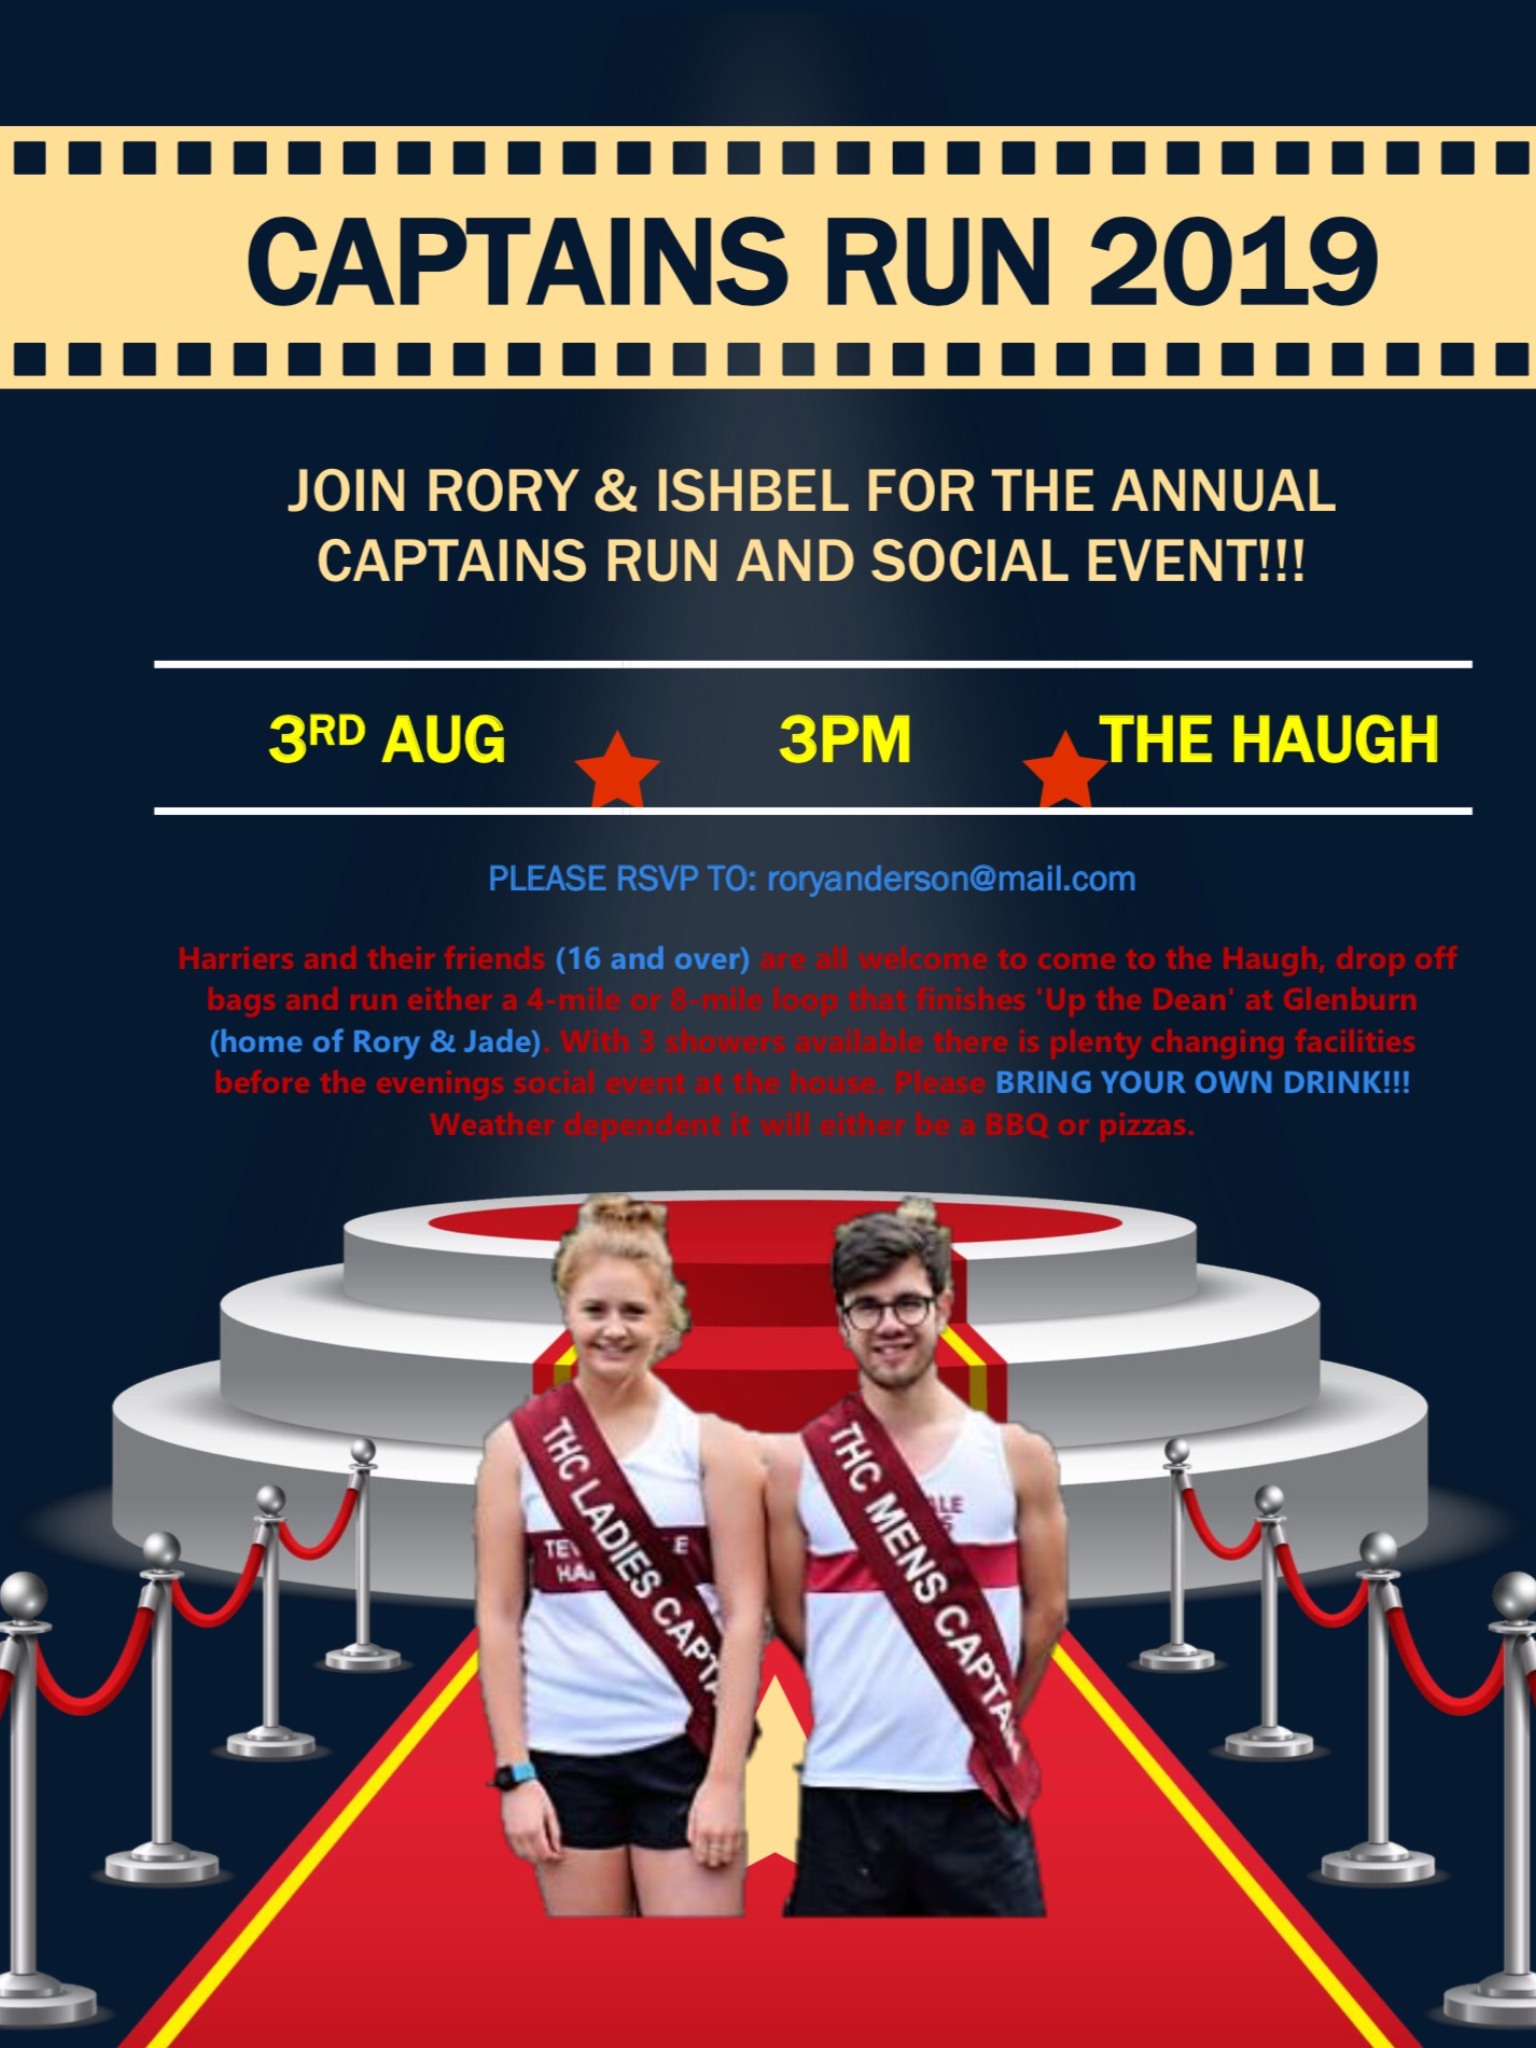 Captains Run 2019 @ The Haugh and then Glenburn